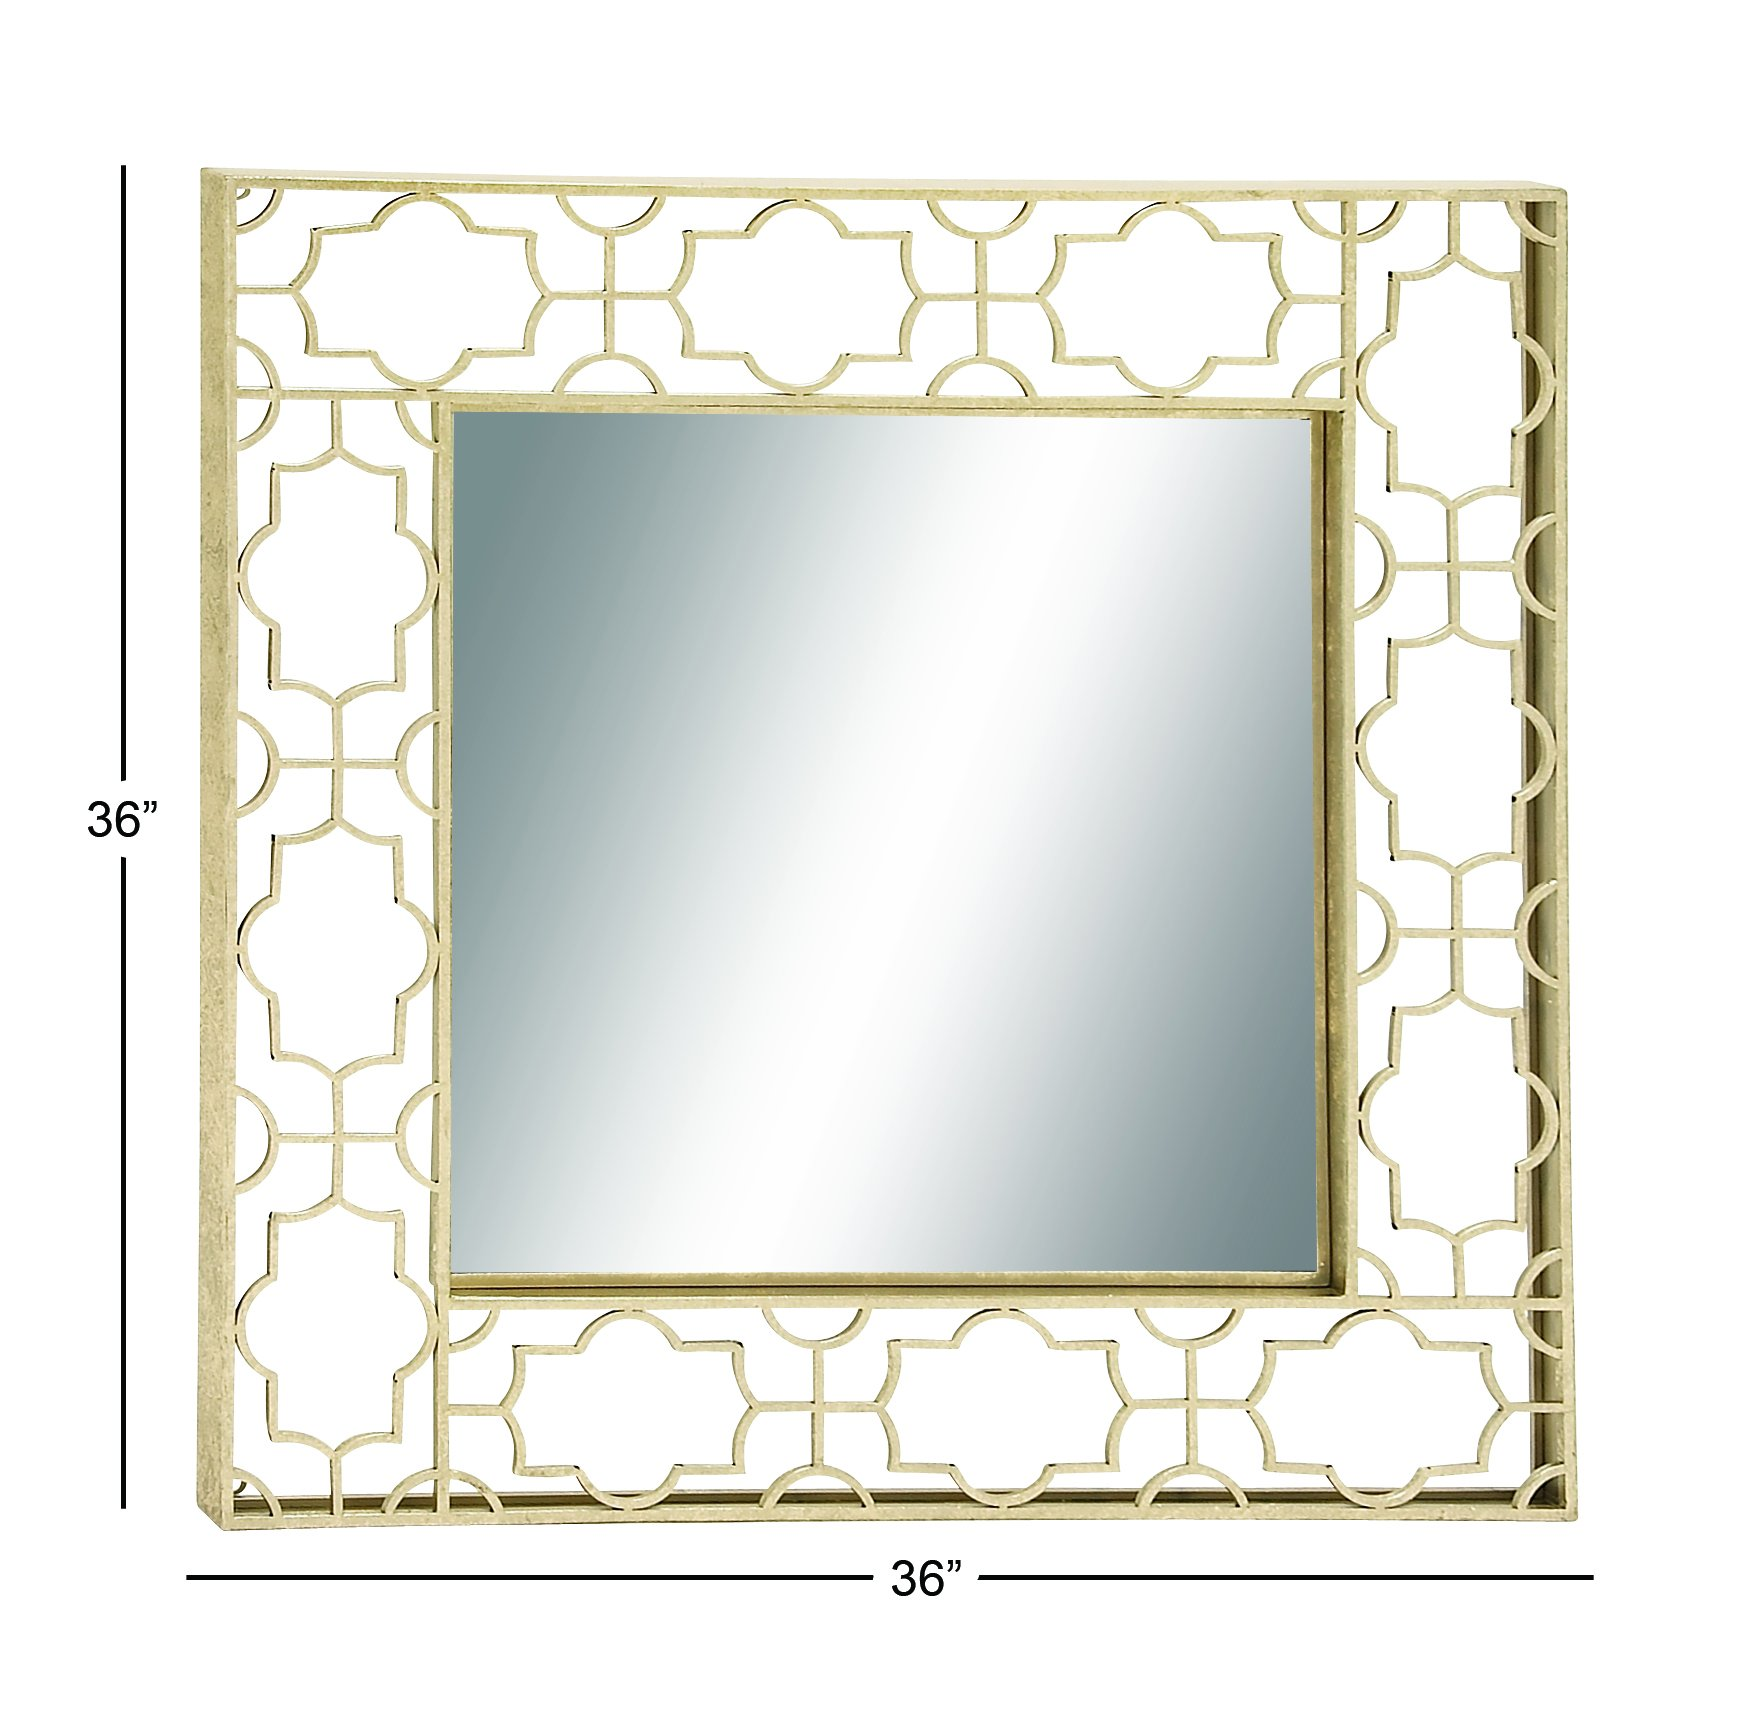 Deco 79 Metal Wall Mirror, 36 by 36-Inch - Color: light gold, onyx black Finish: polished Material: iron metal - bathroom-mirrors, bathroom-accessories, bathroom - 71fHrFP7%2BEL -